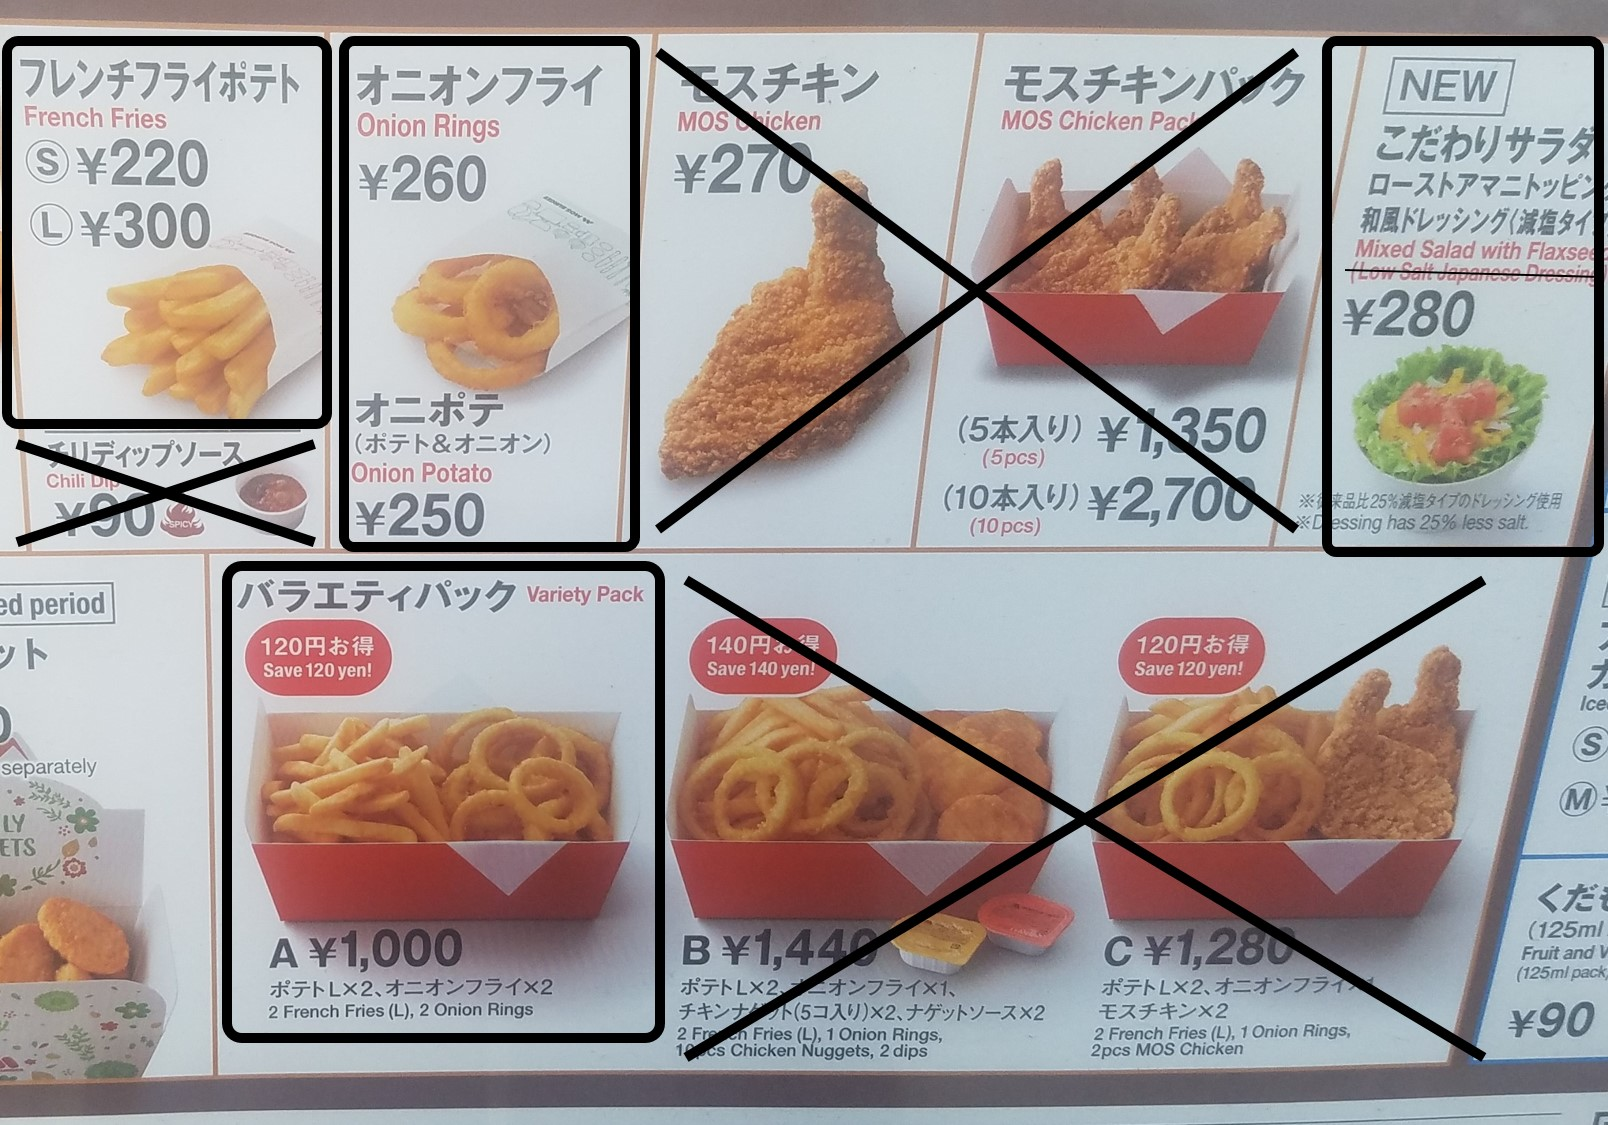 Mos Burger Menu.jpg